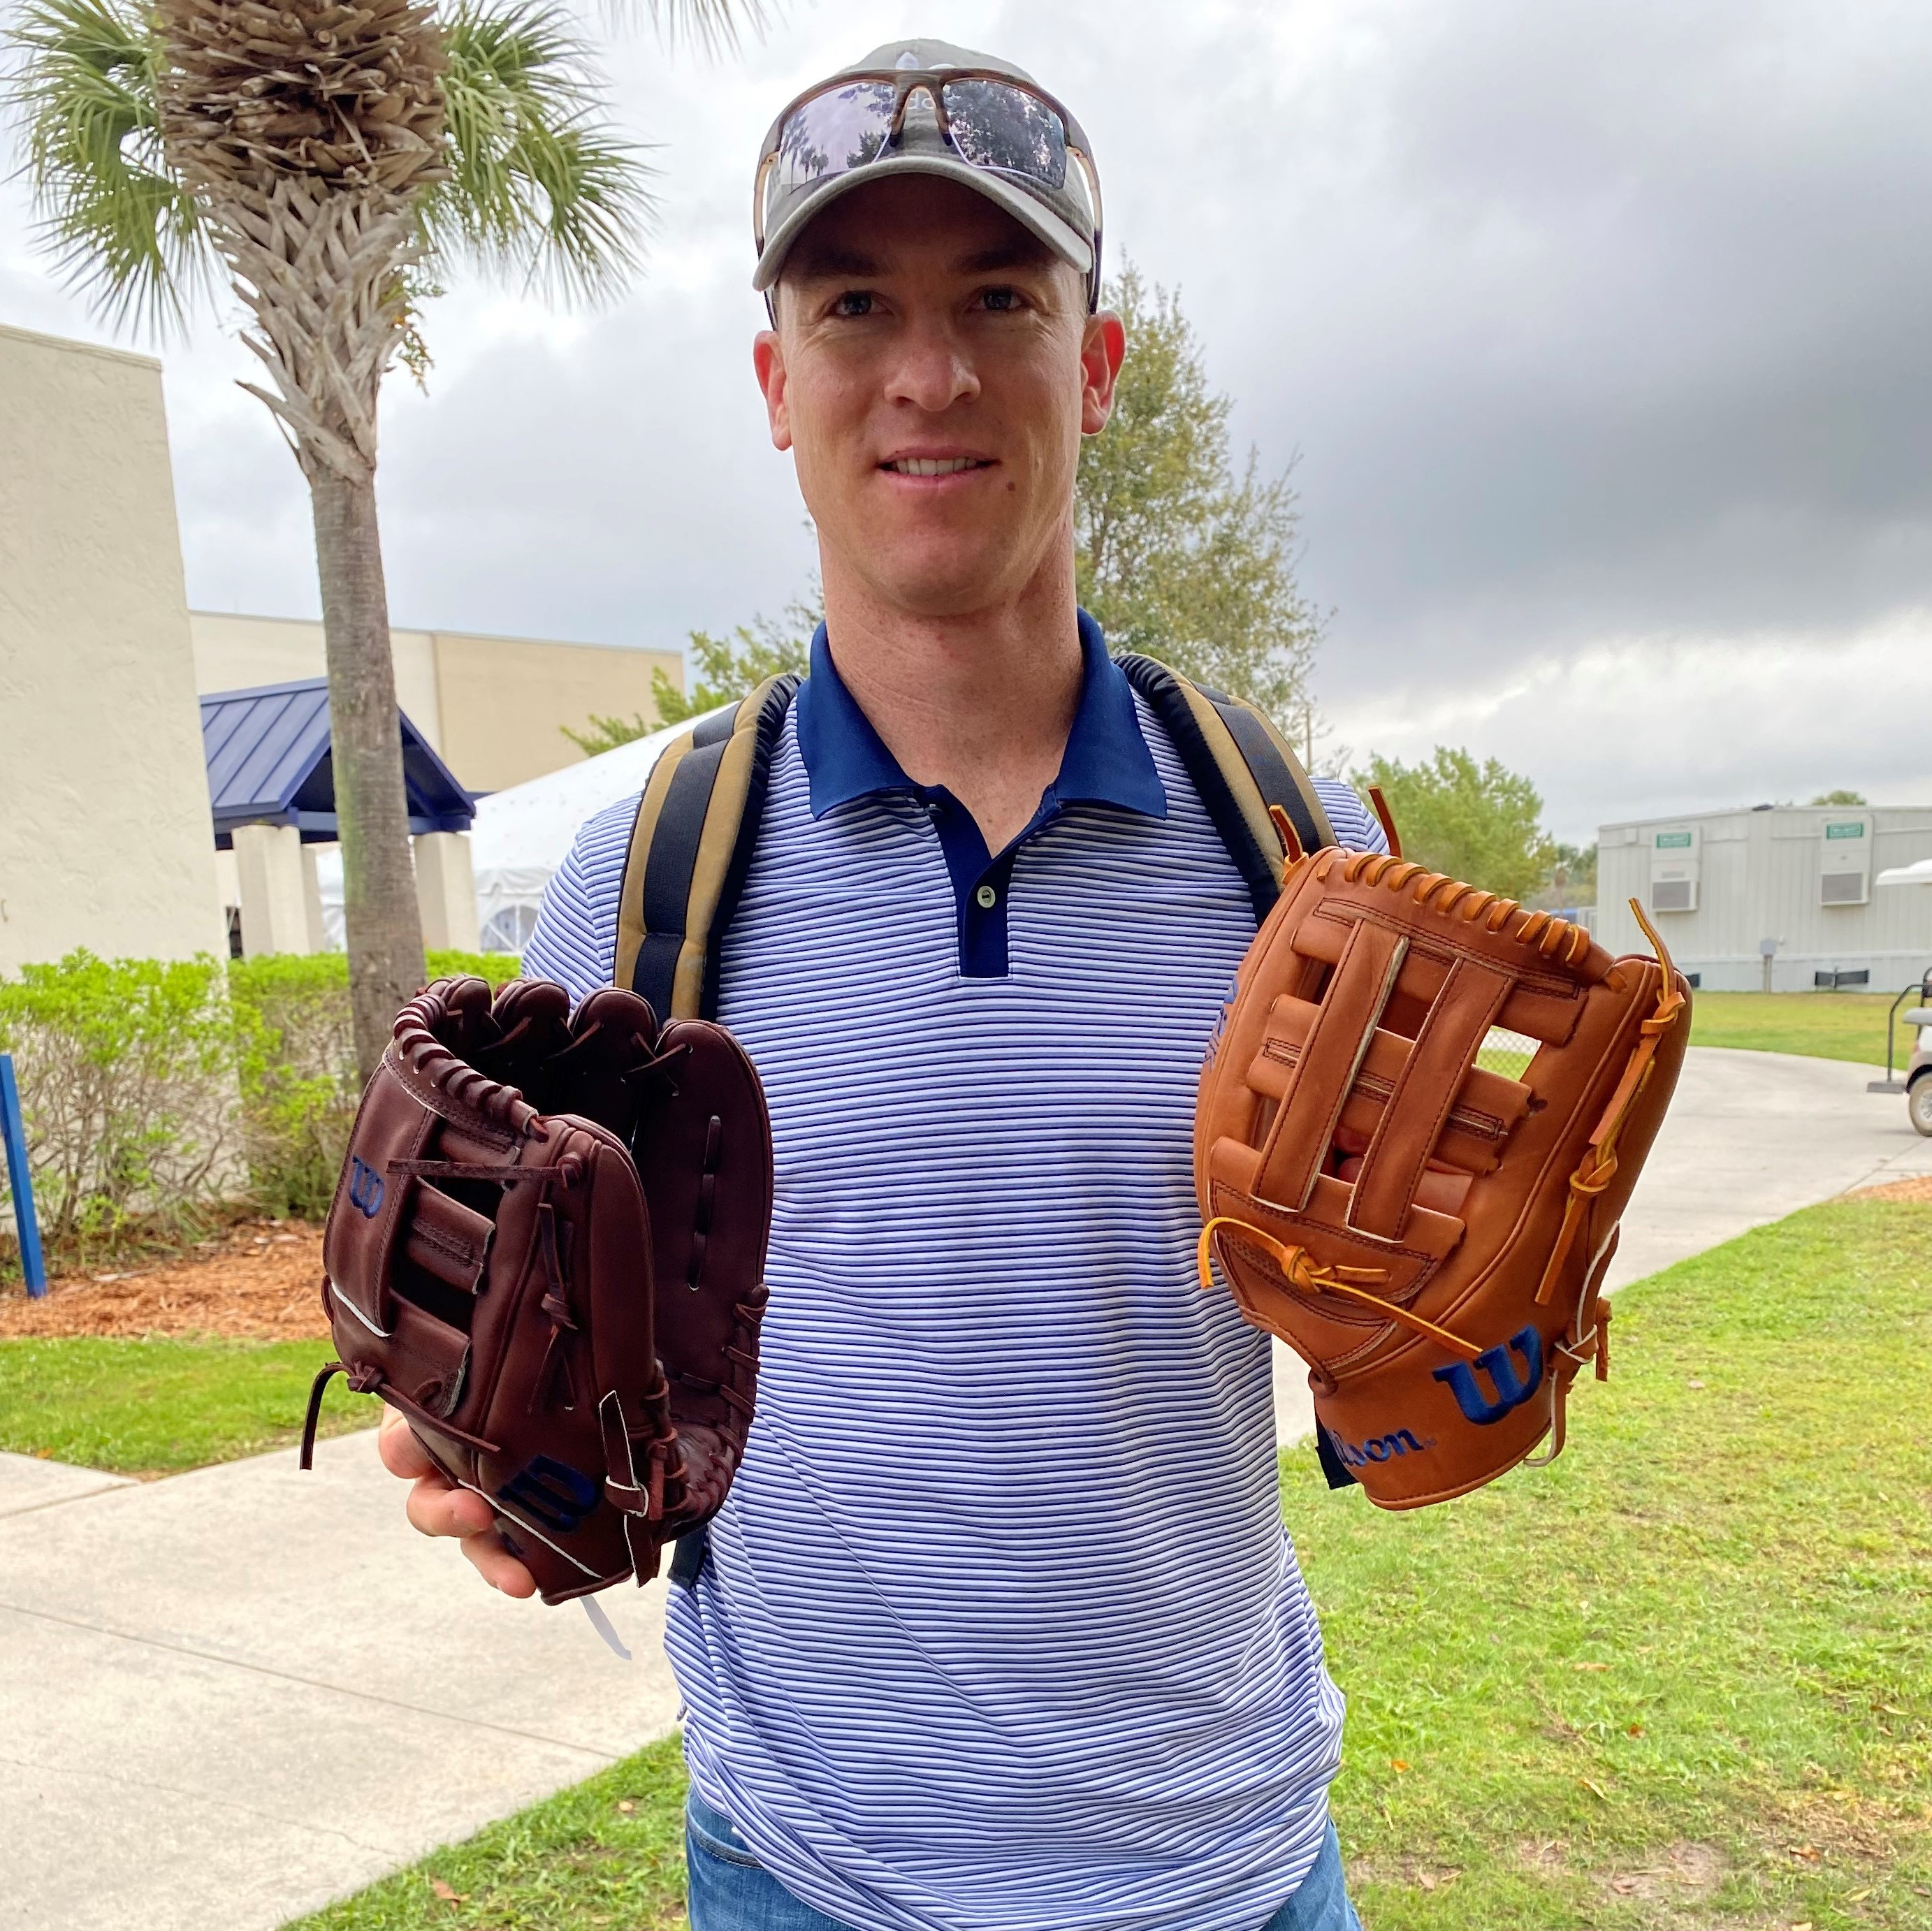 Joey Wendel with his gloves